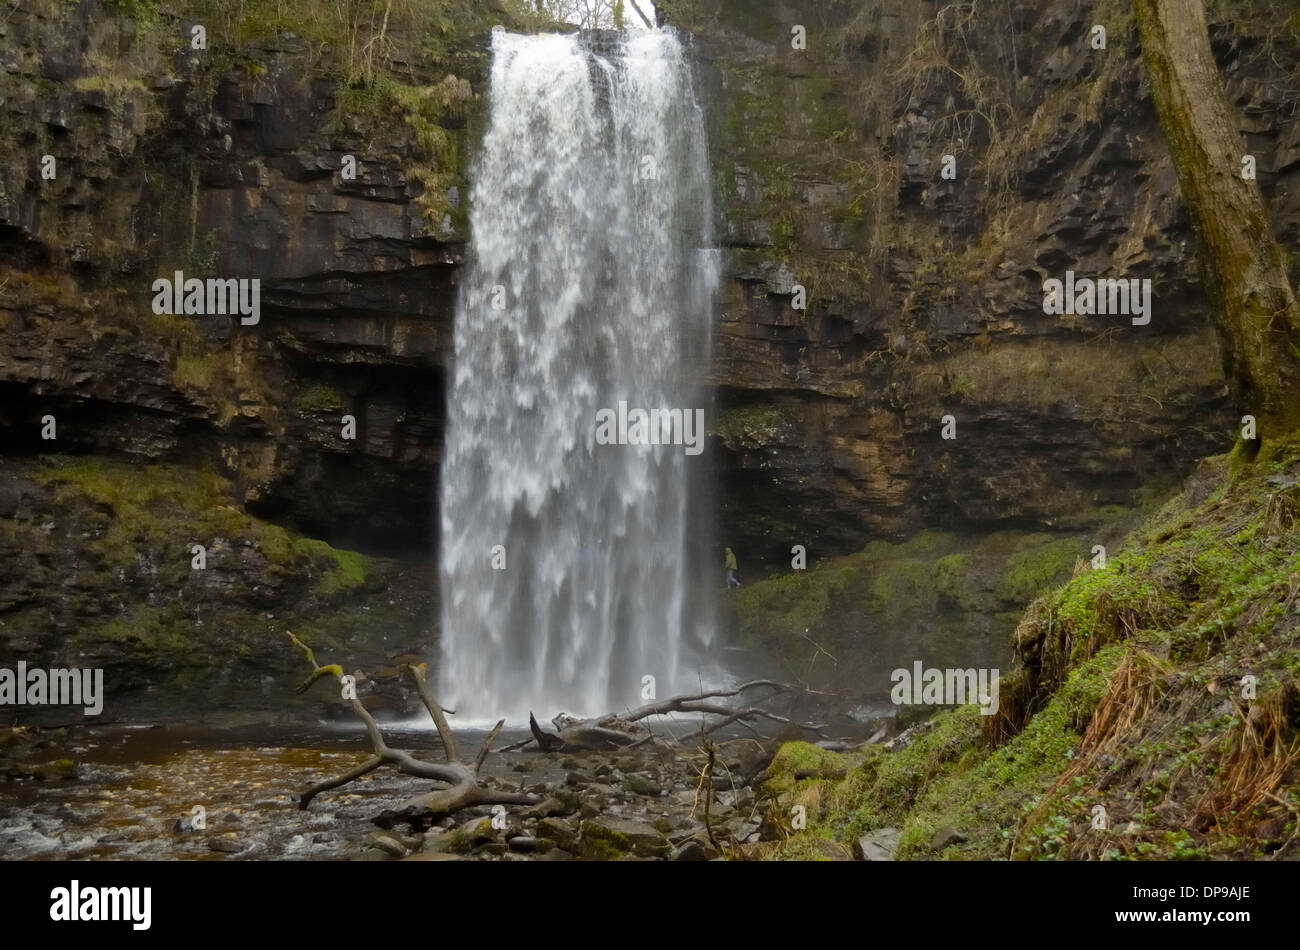 Henrhyd Falls with person walking behind the curtain - Stock Image